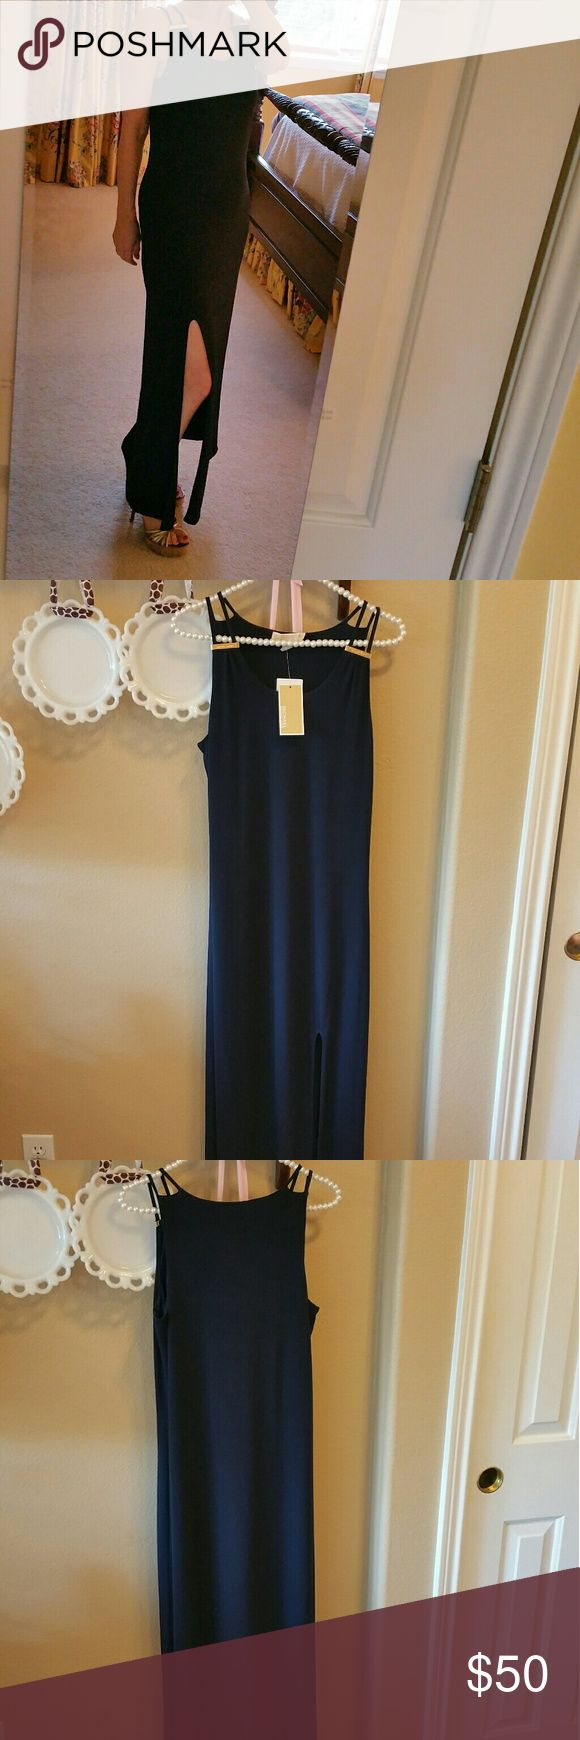 NWT MICHAEL KORS NAVY MAXI DRESS WITH GOLD ACCENTS This NWT MICHAEL KORS NAVY MAXI DRESS WITH GOLD ACCENTS is form fitting and is flexible enough to wear shopping during the day or dressed up for a night out on the town. Michael Kors Dresses Maxi